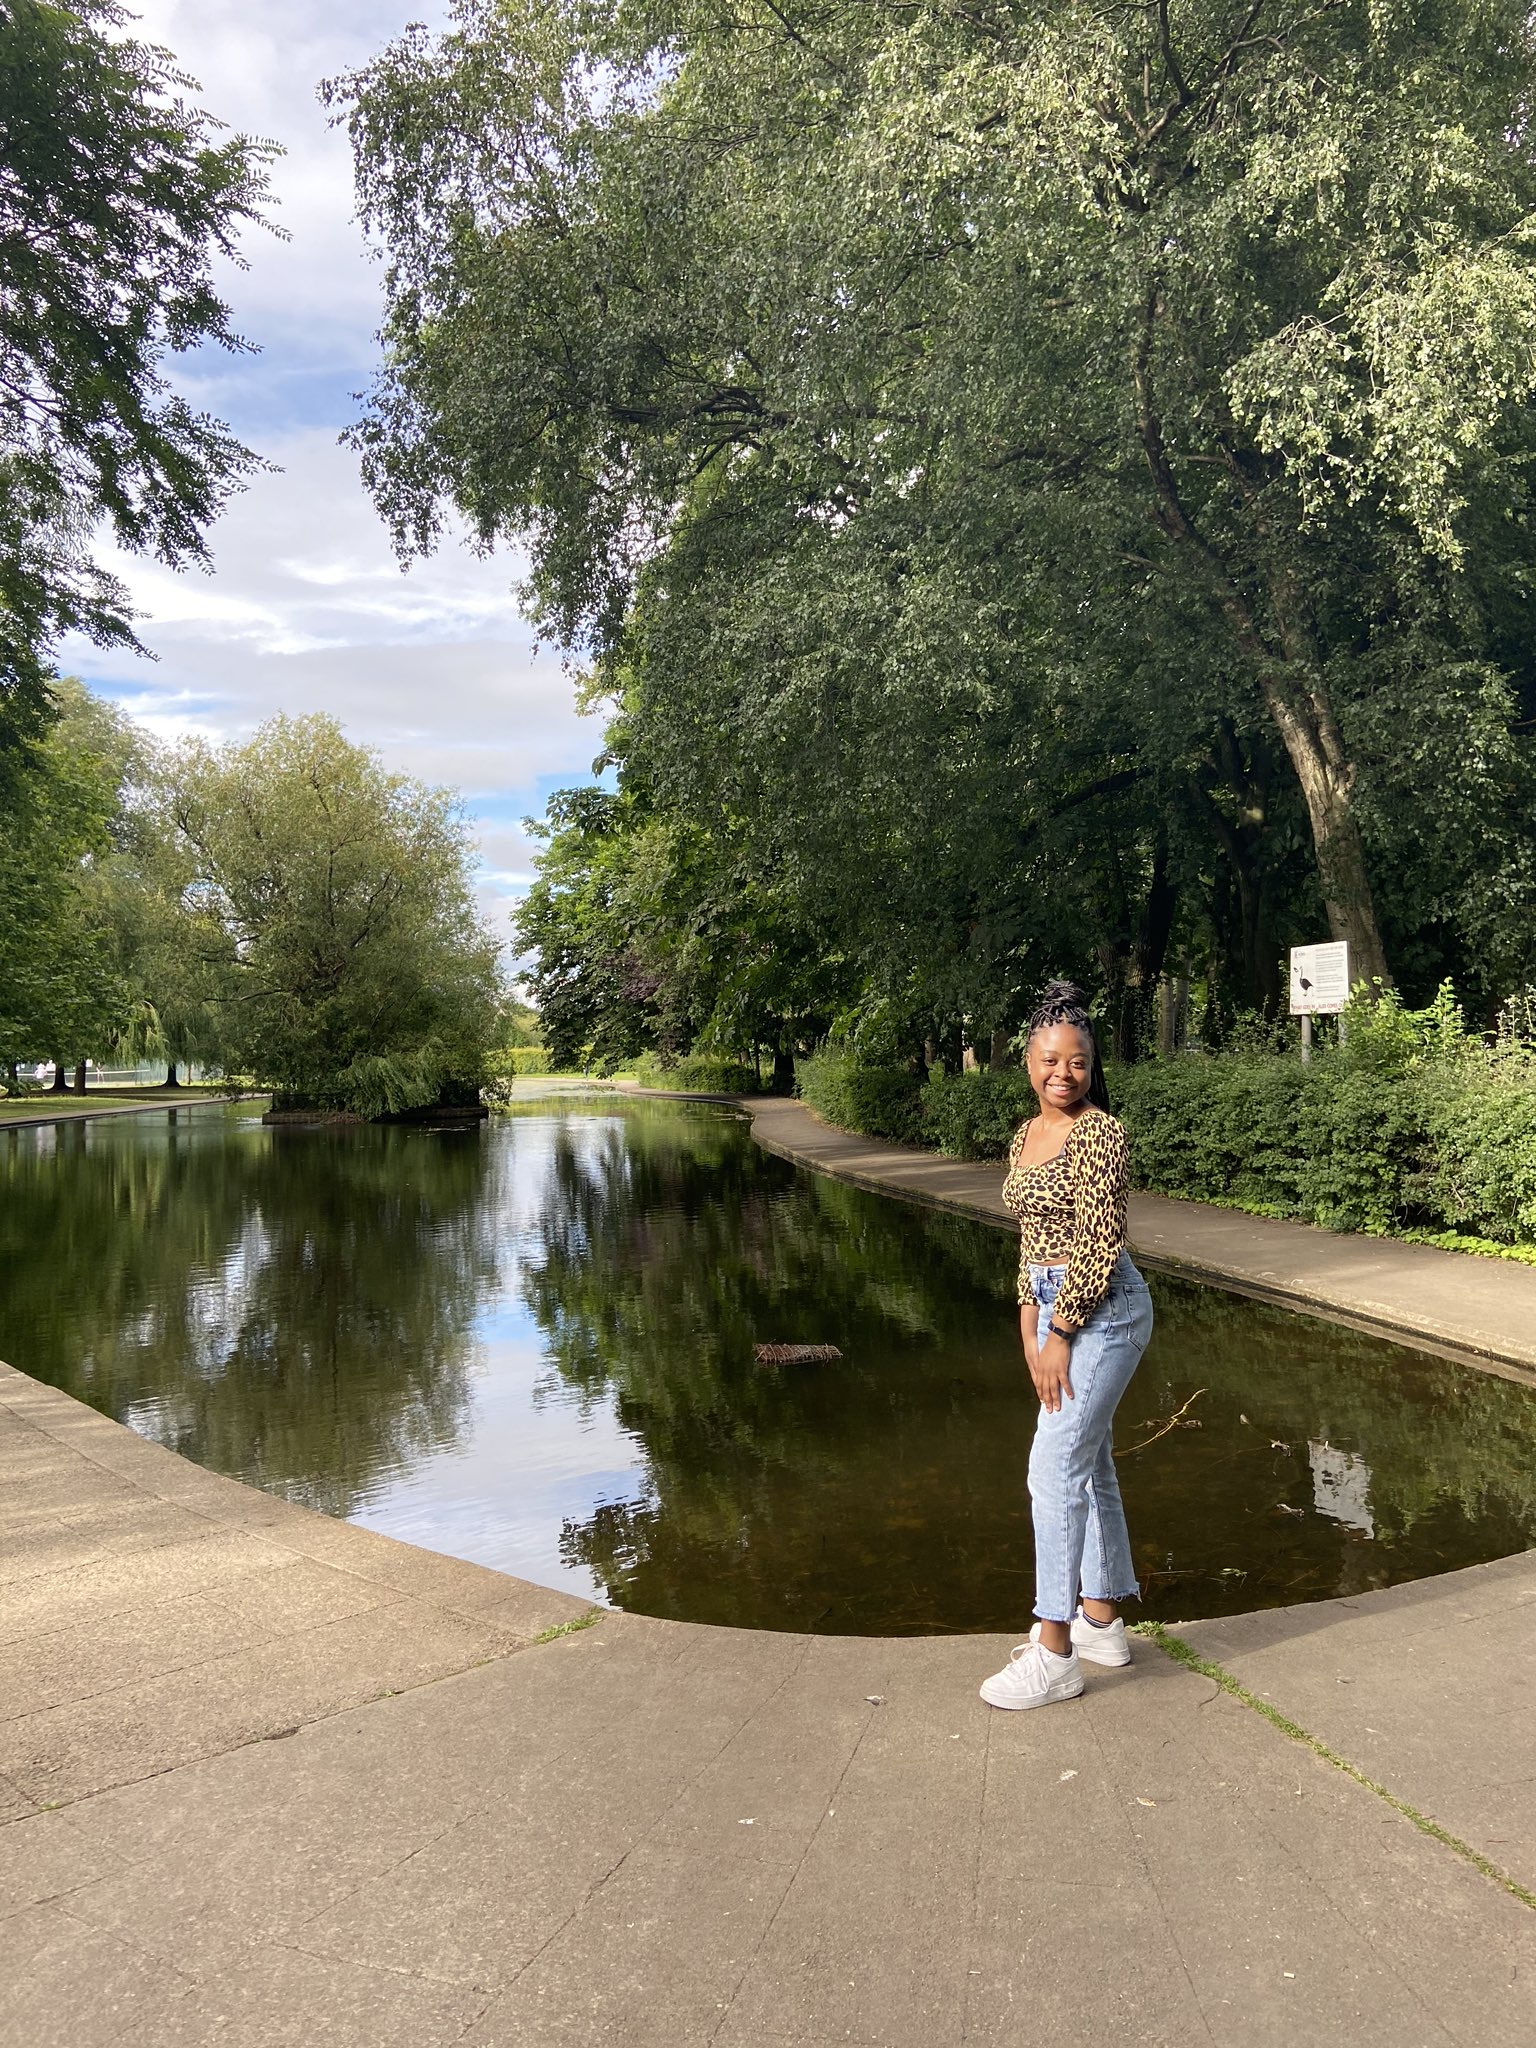 A picture of smiling at the camera standing next to a lake surrounded by greenery wearing blue jeans, white trainers and a leopard print top